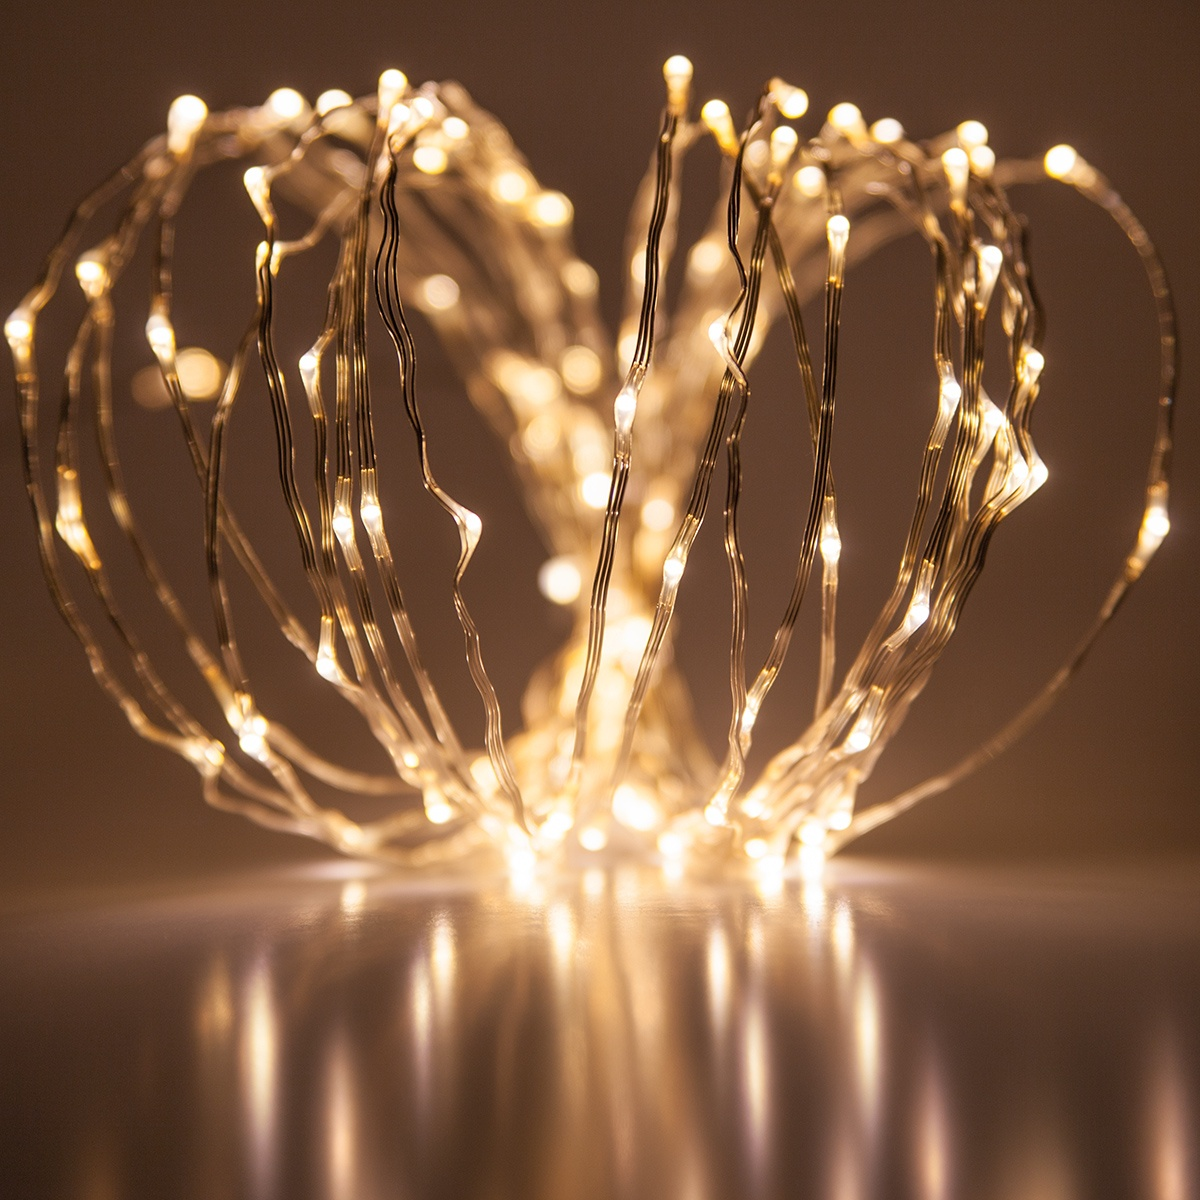 20 Mini Christmas Lights